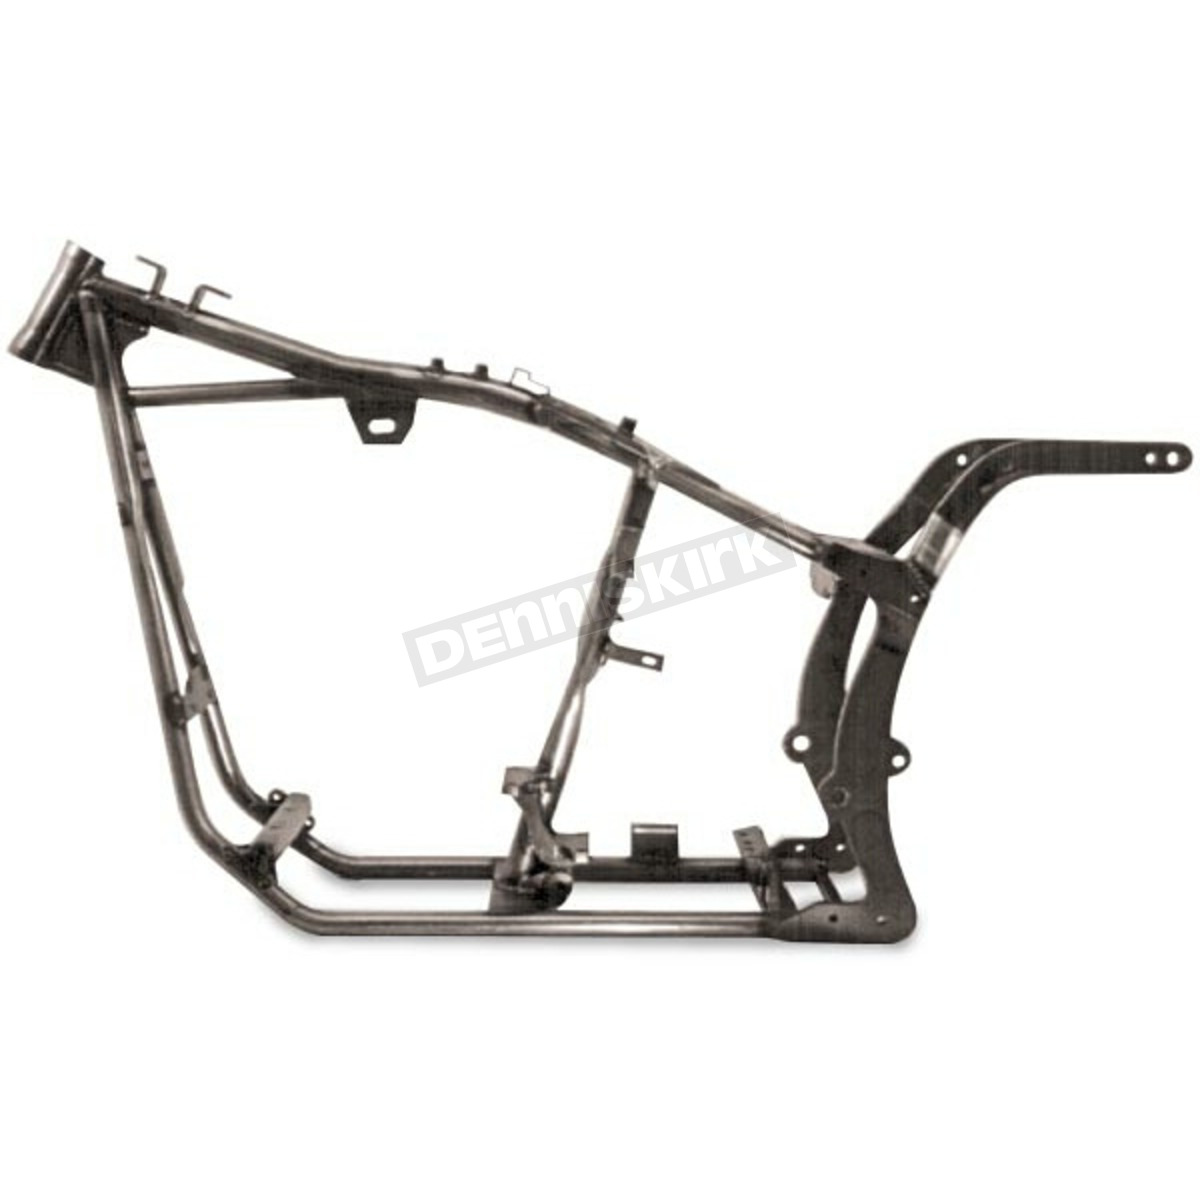 Hardbody Oe Style Replacement Frame For Softail